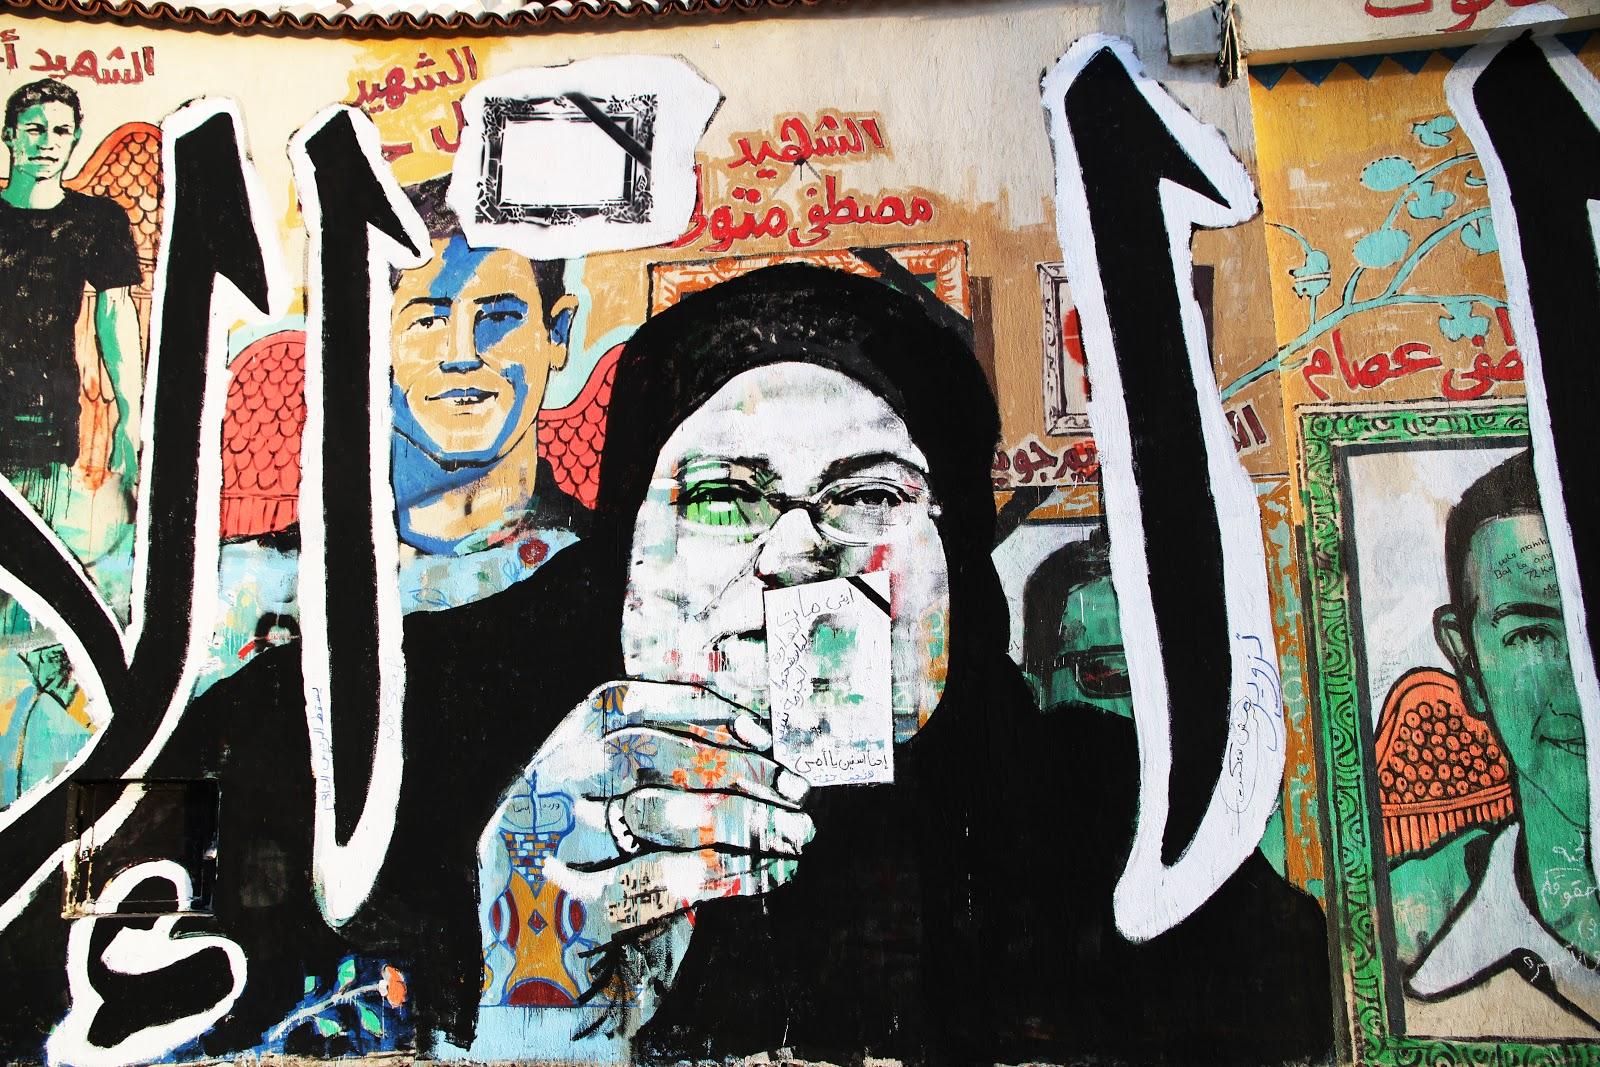 Interview with Mona Abaza on Graffiti and the Egyptian Revolution